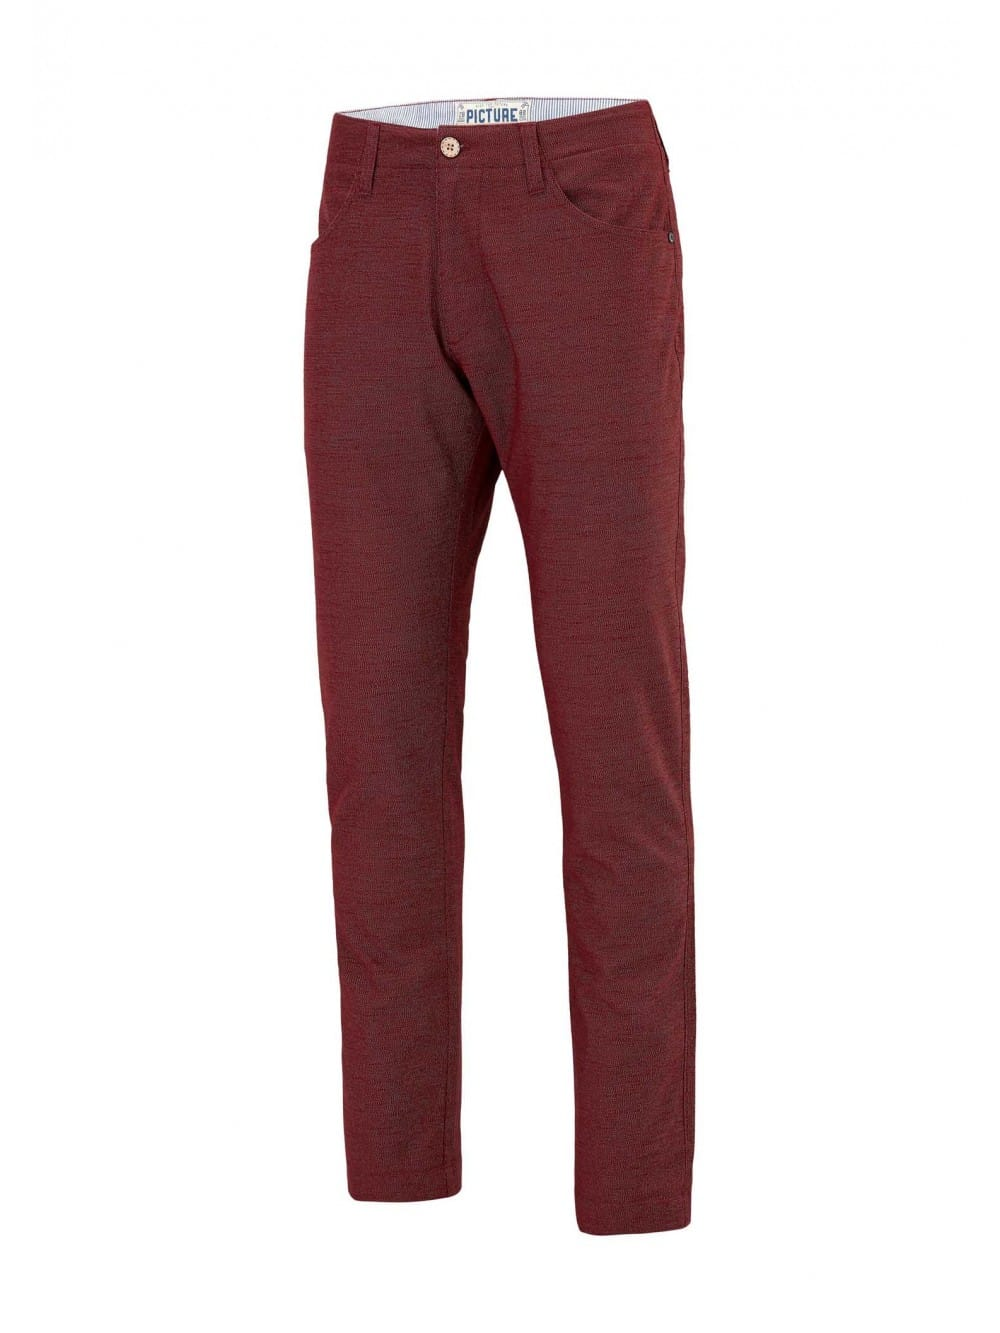 Chino recycled cotton long pants-Feodor